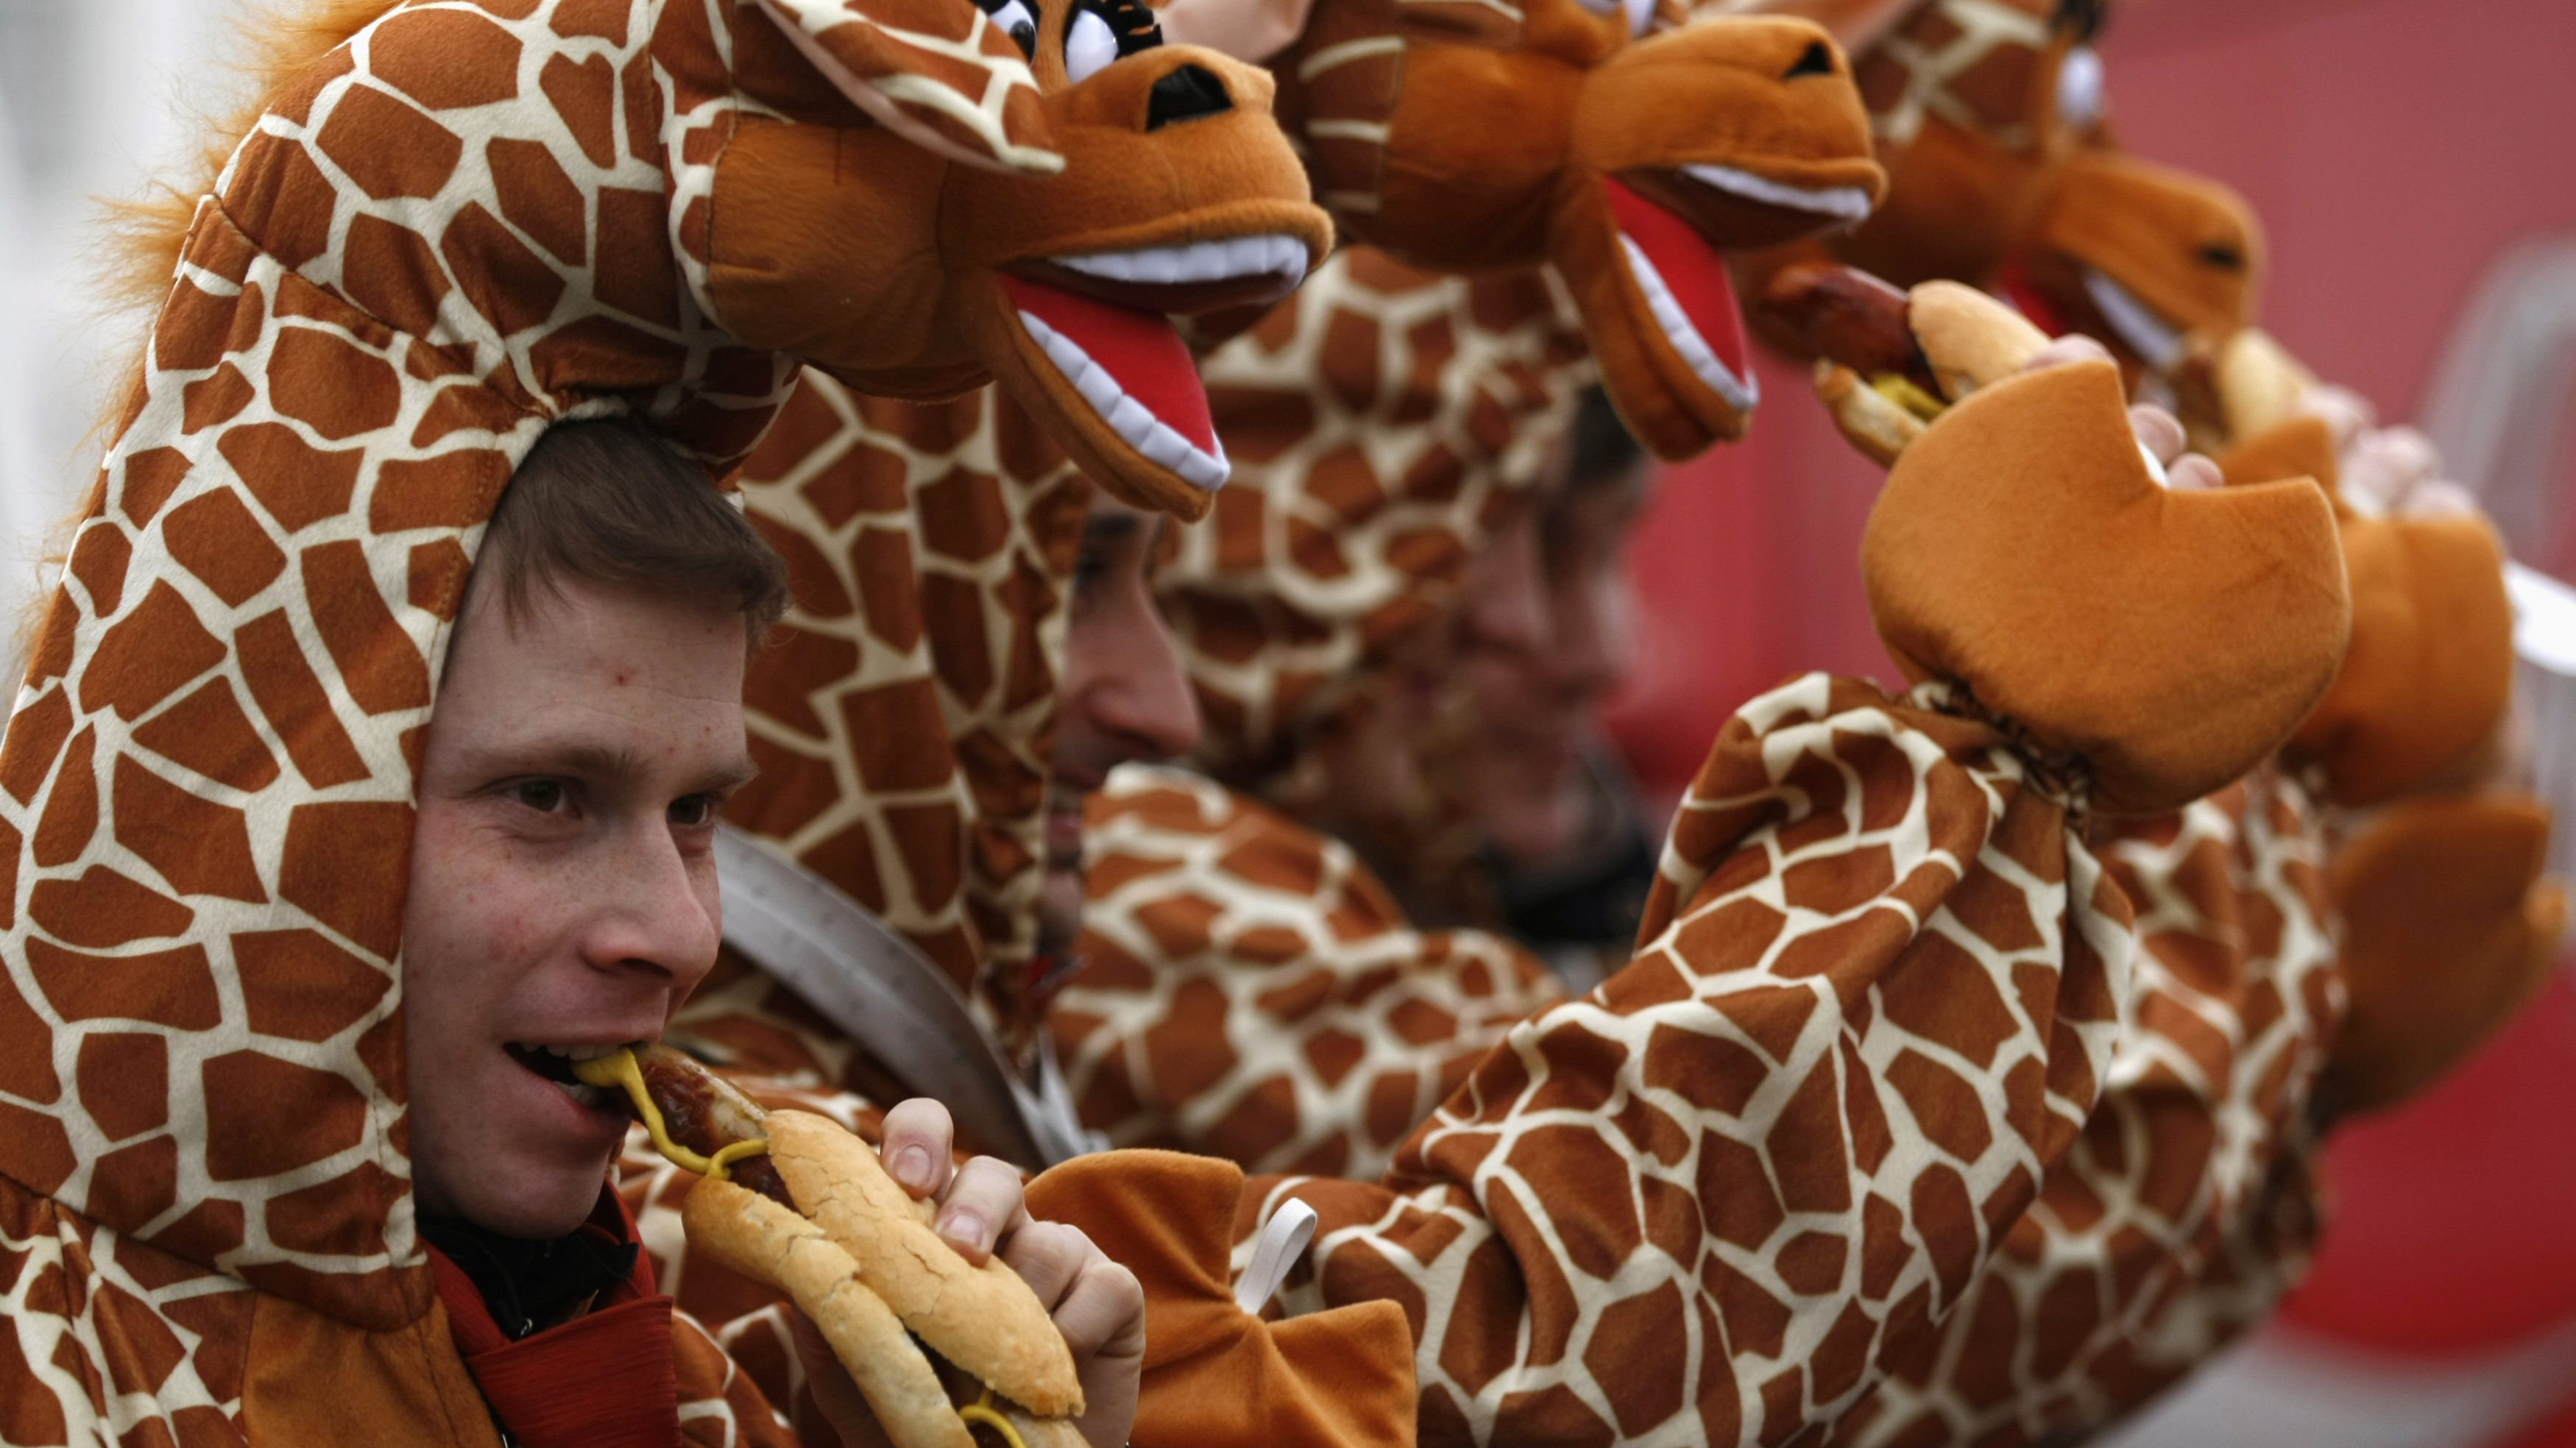 """Men dressed in giraffe costumes eat sausages during """"Weiberfastnacht"""" (Women's Carnival) in Cologne February 7, 2013. Women's Carnival marks the start of a week of street festivals, the highlight of the event being """"Rosenmontag"""" (Rose Monday), the final day of the carnival where mass processions are held. REUTERS/Ina Fassbender  (GERMANY - Tags: SOCIETY) - GM1E9271H4402"""